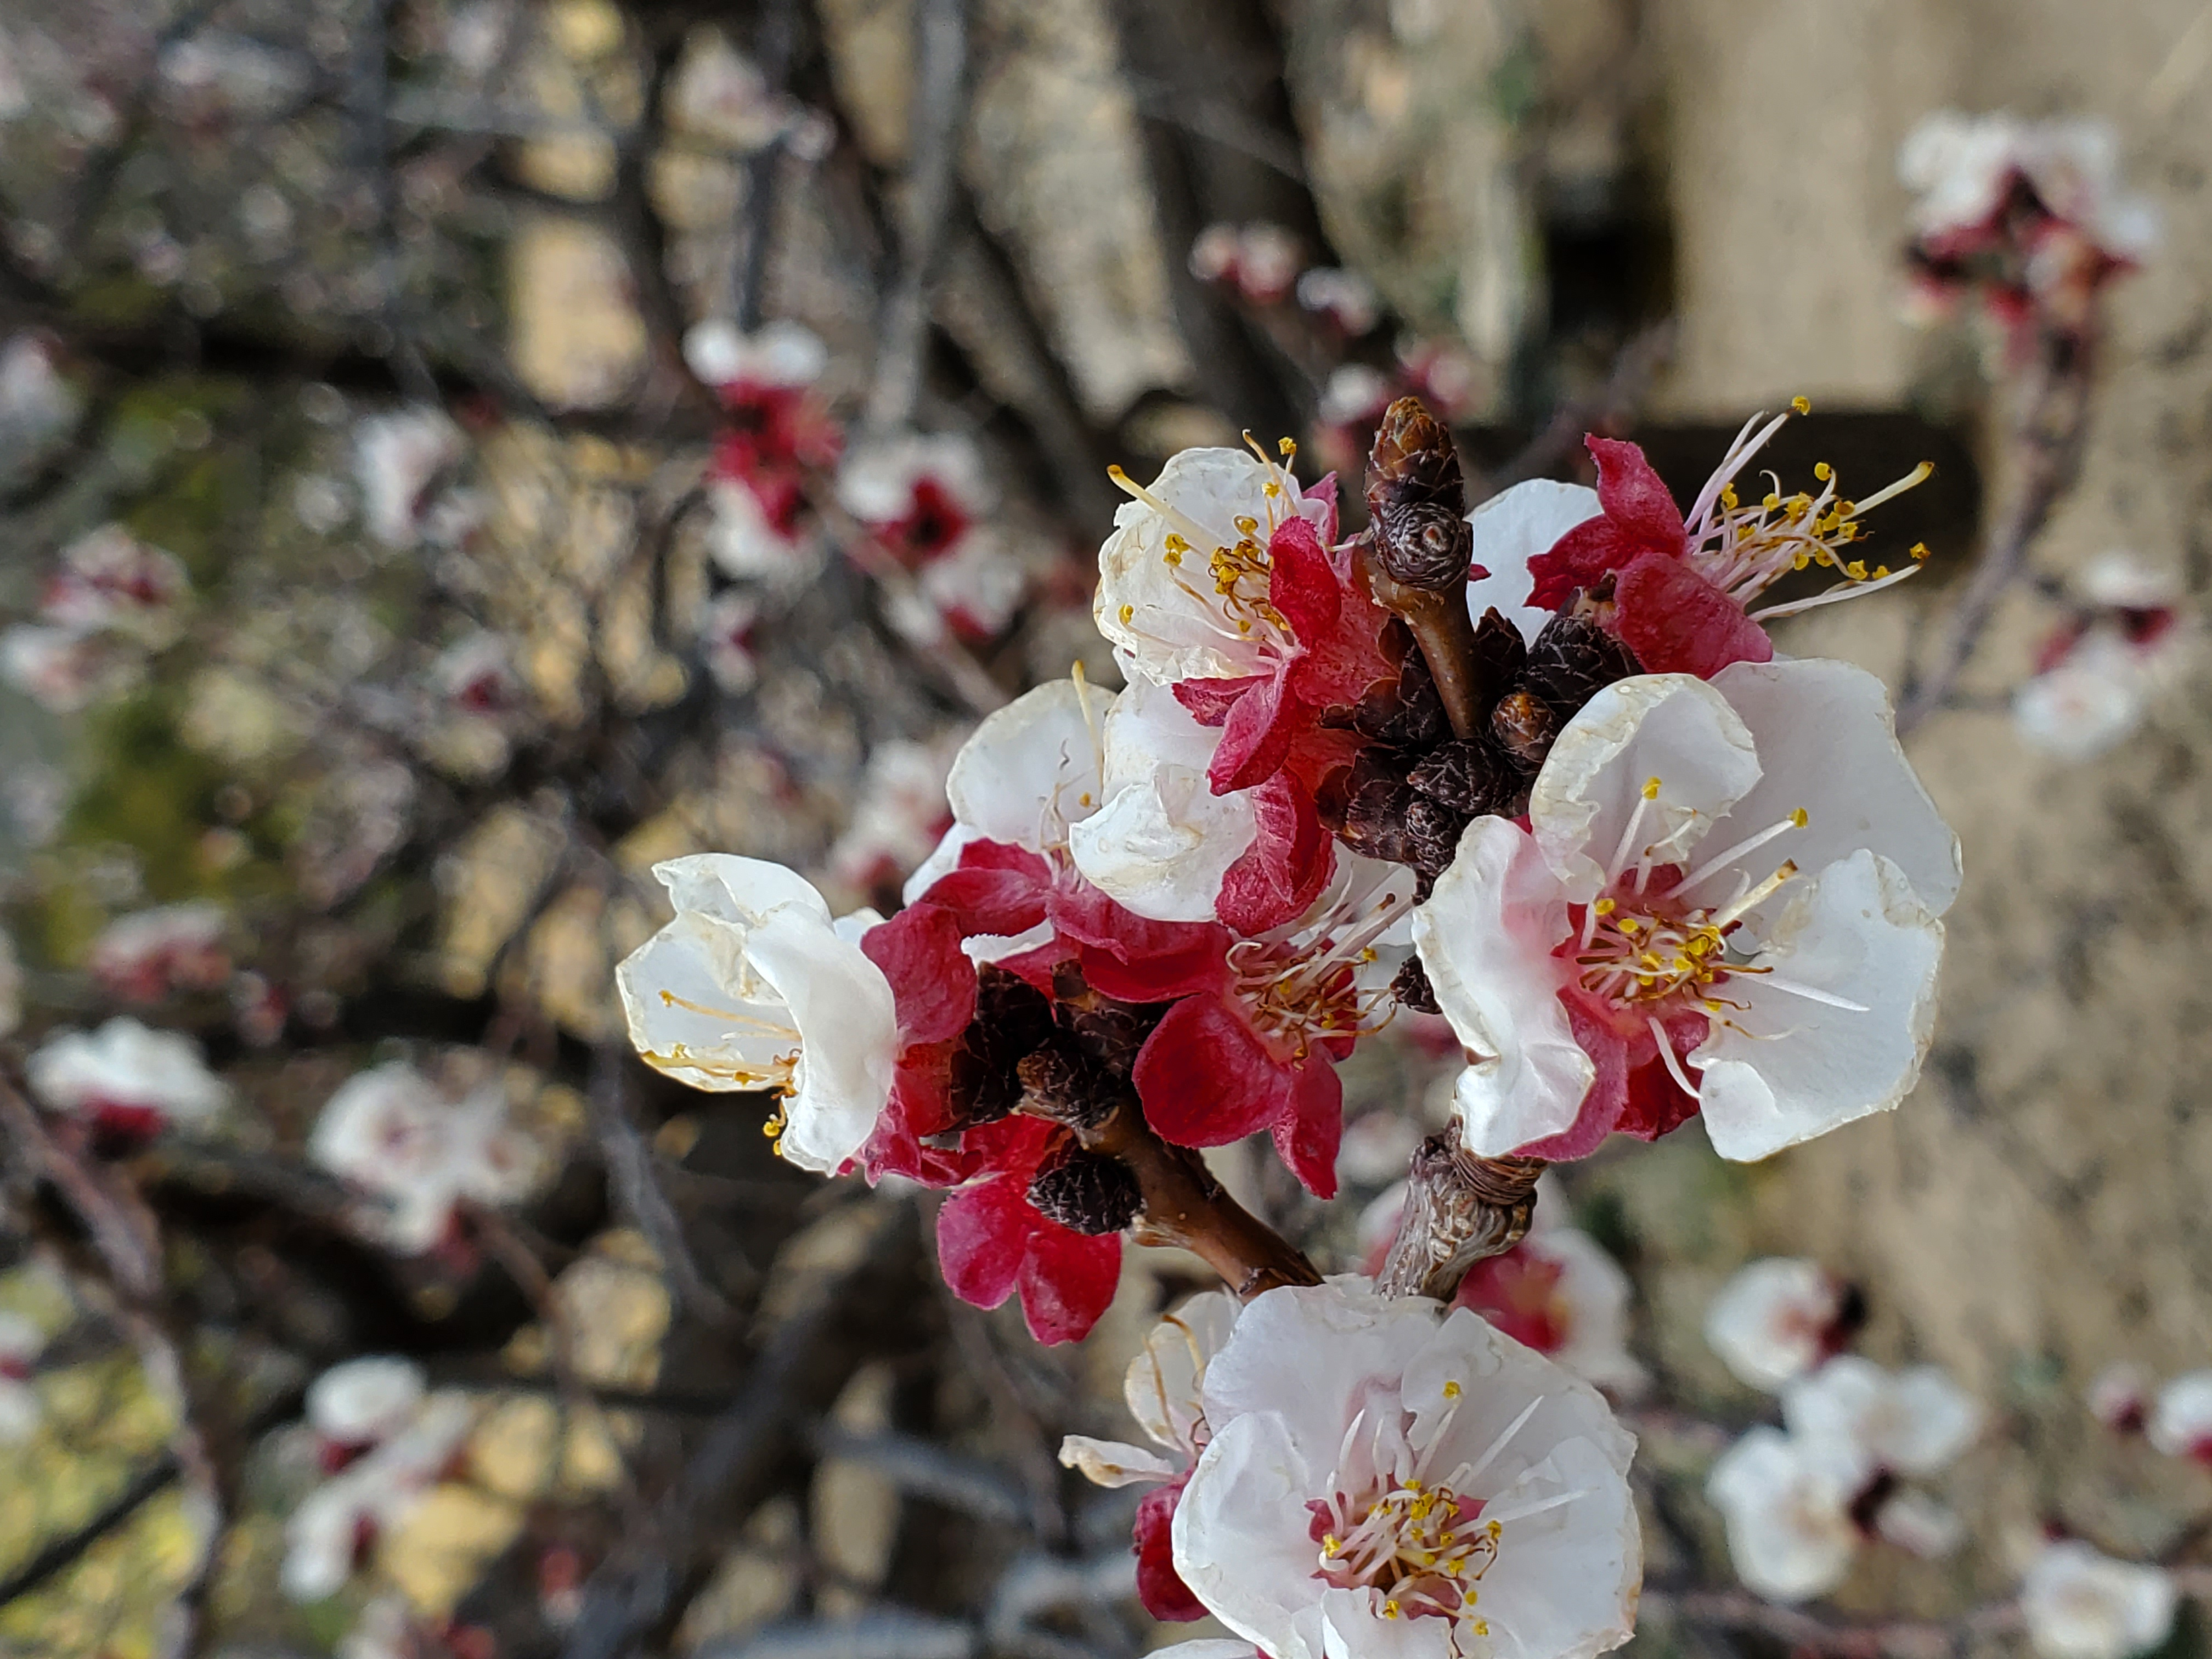 Apricot blooms